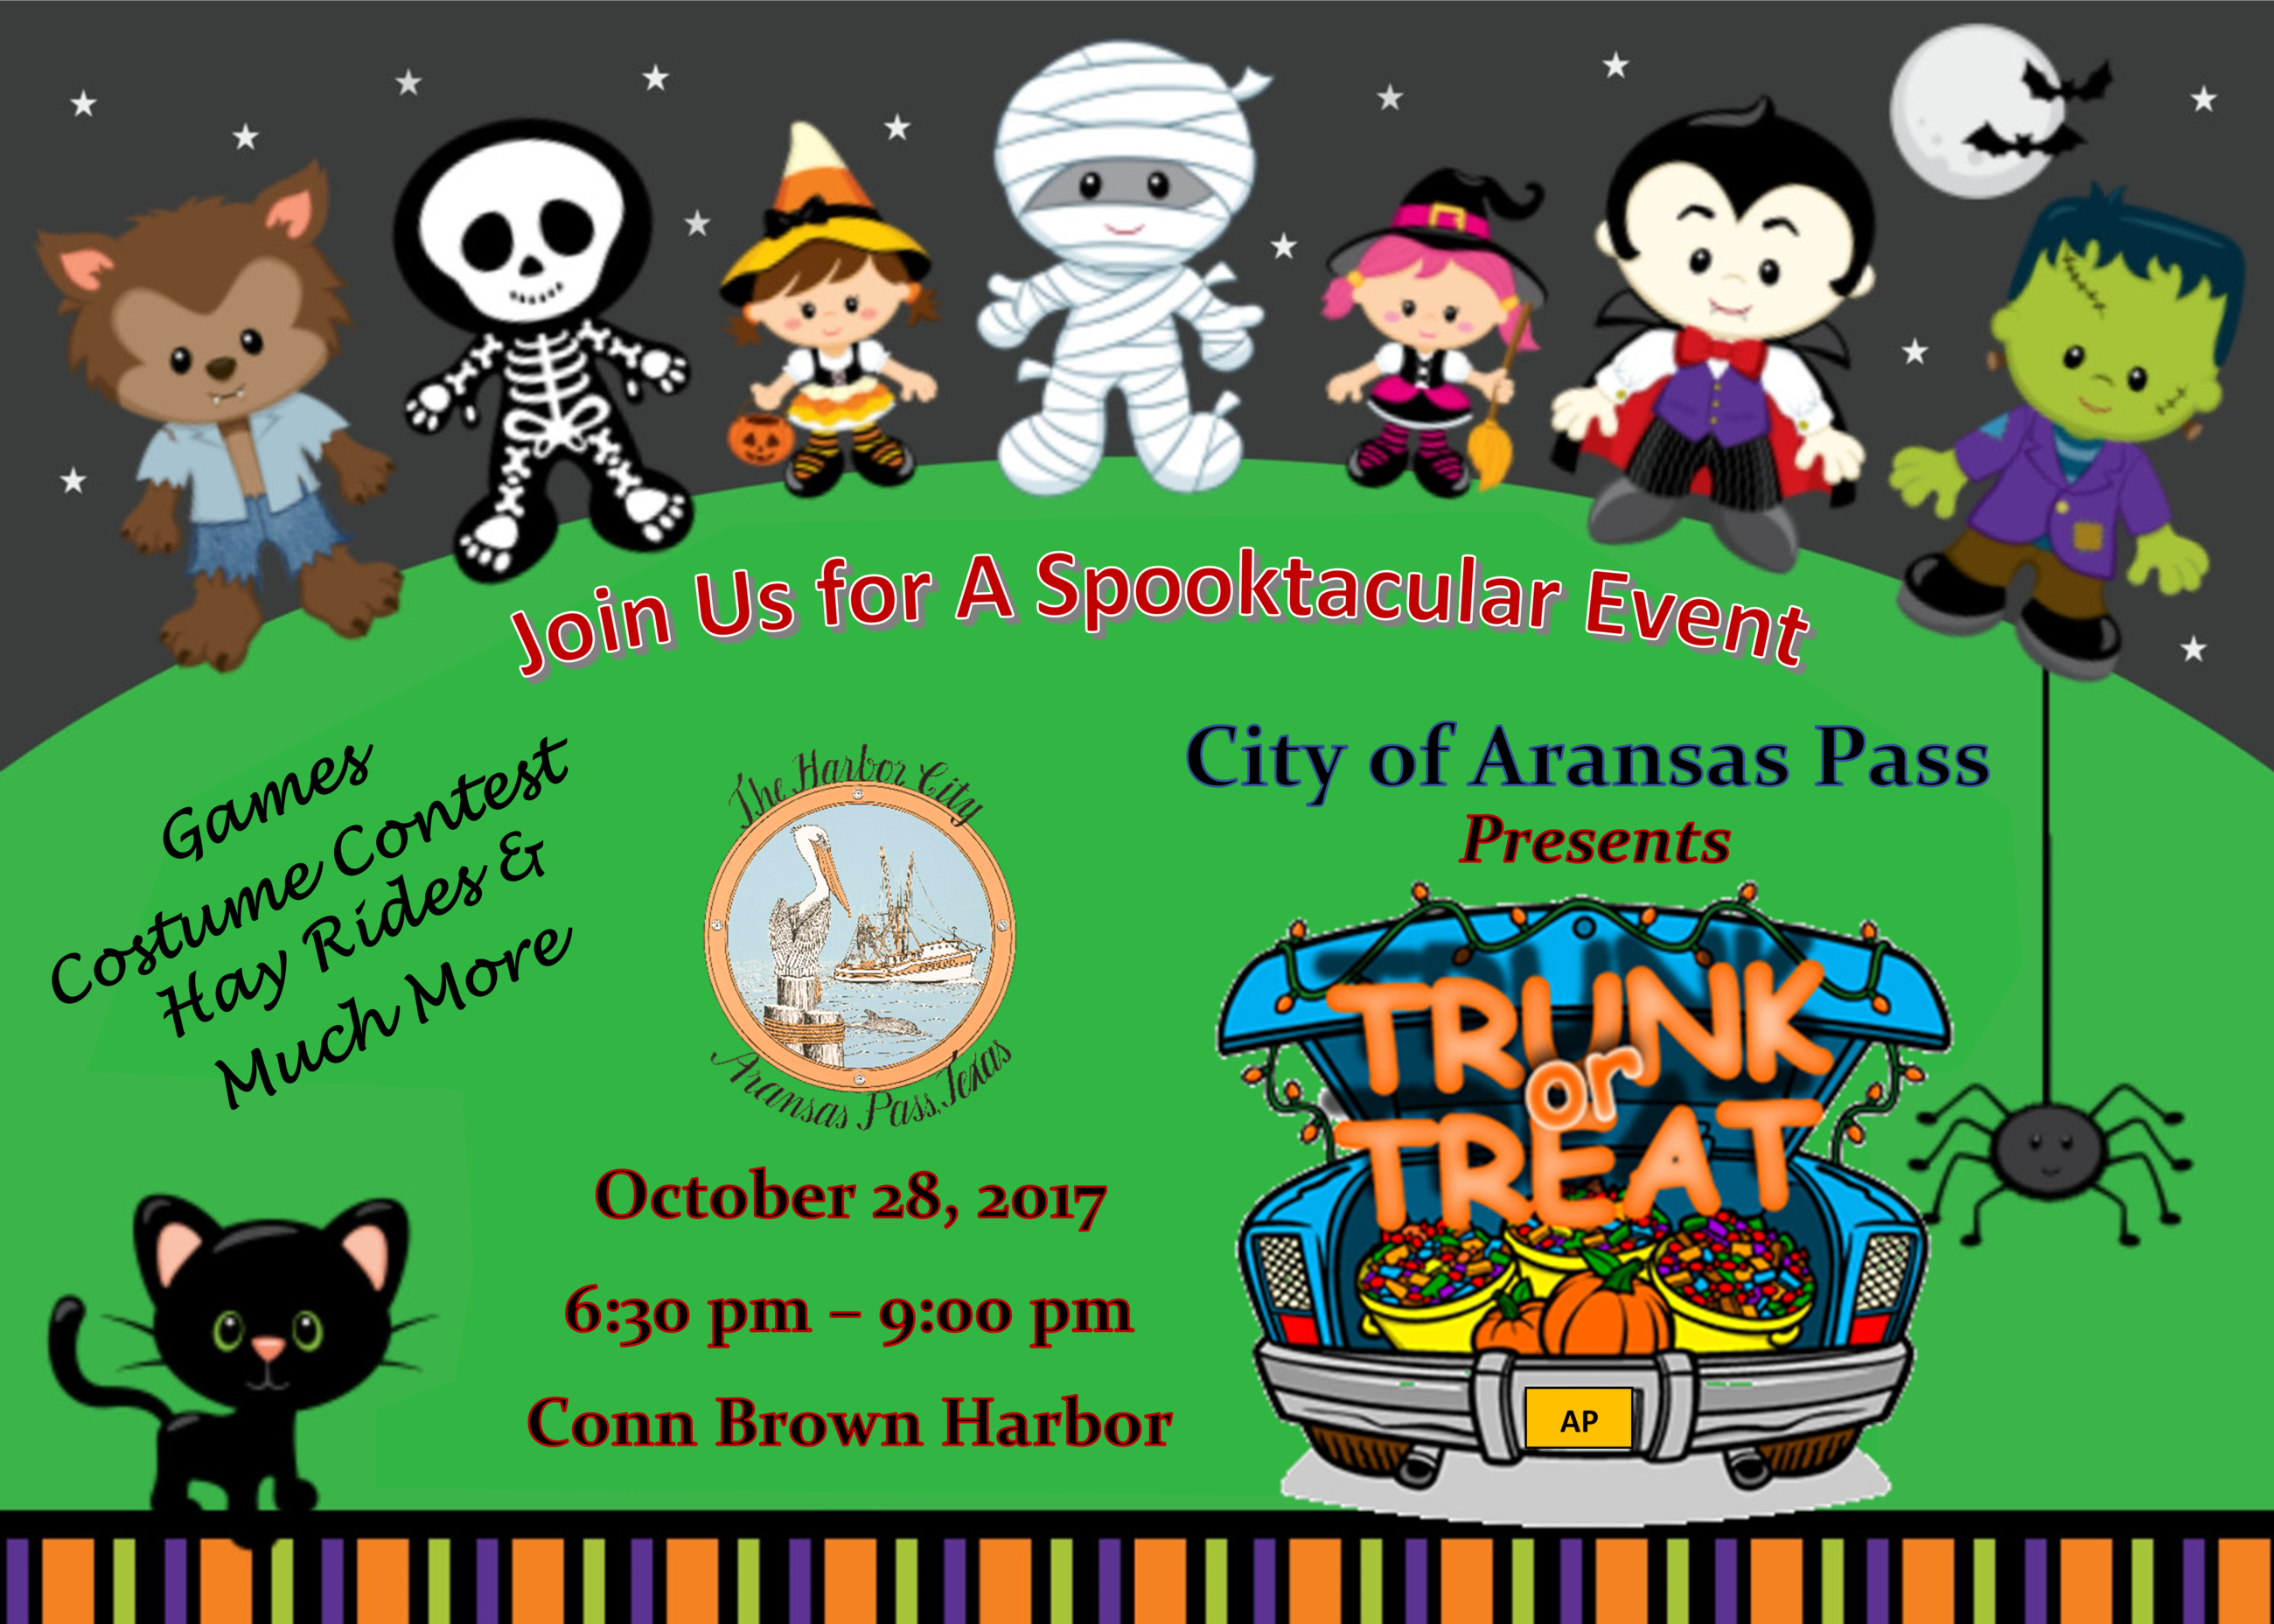 trunk-or-treat flyer 2017 (2)